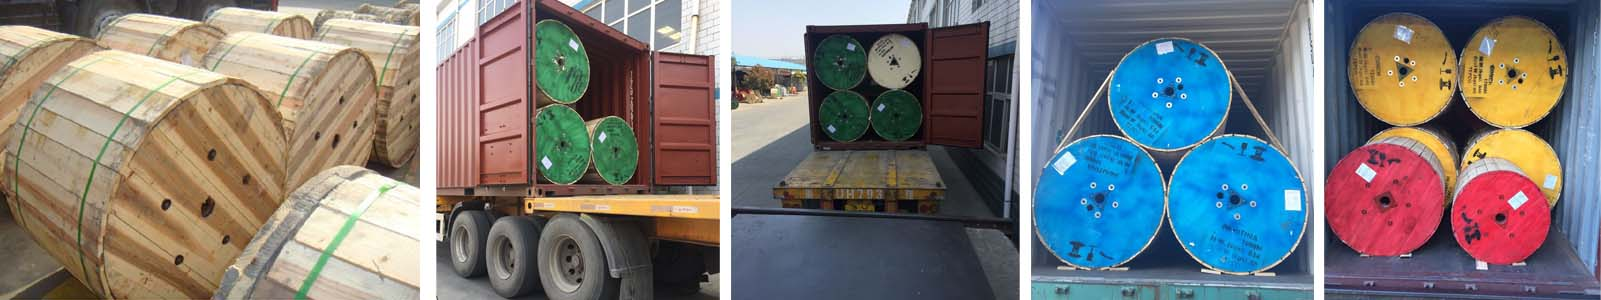 3core 4 core 240mm armoured cable delivery to South Africa and Nigeria